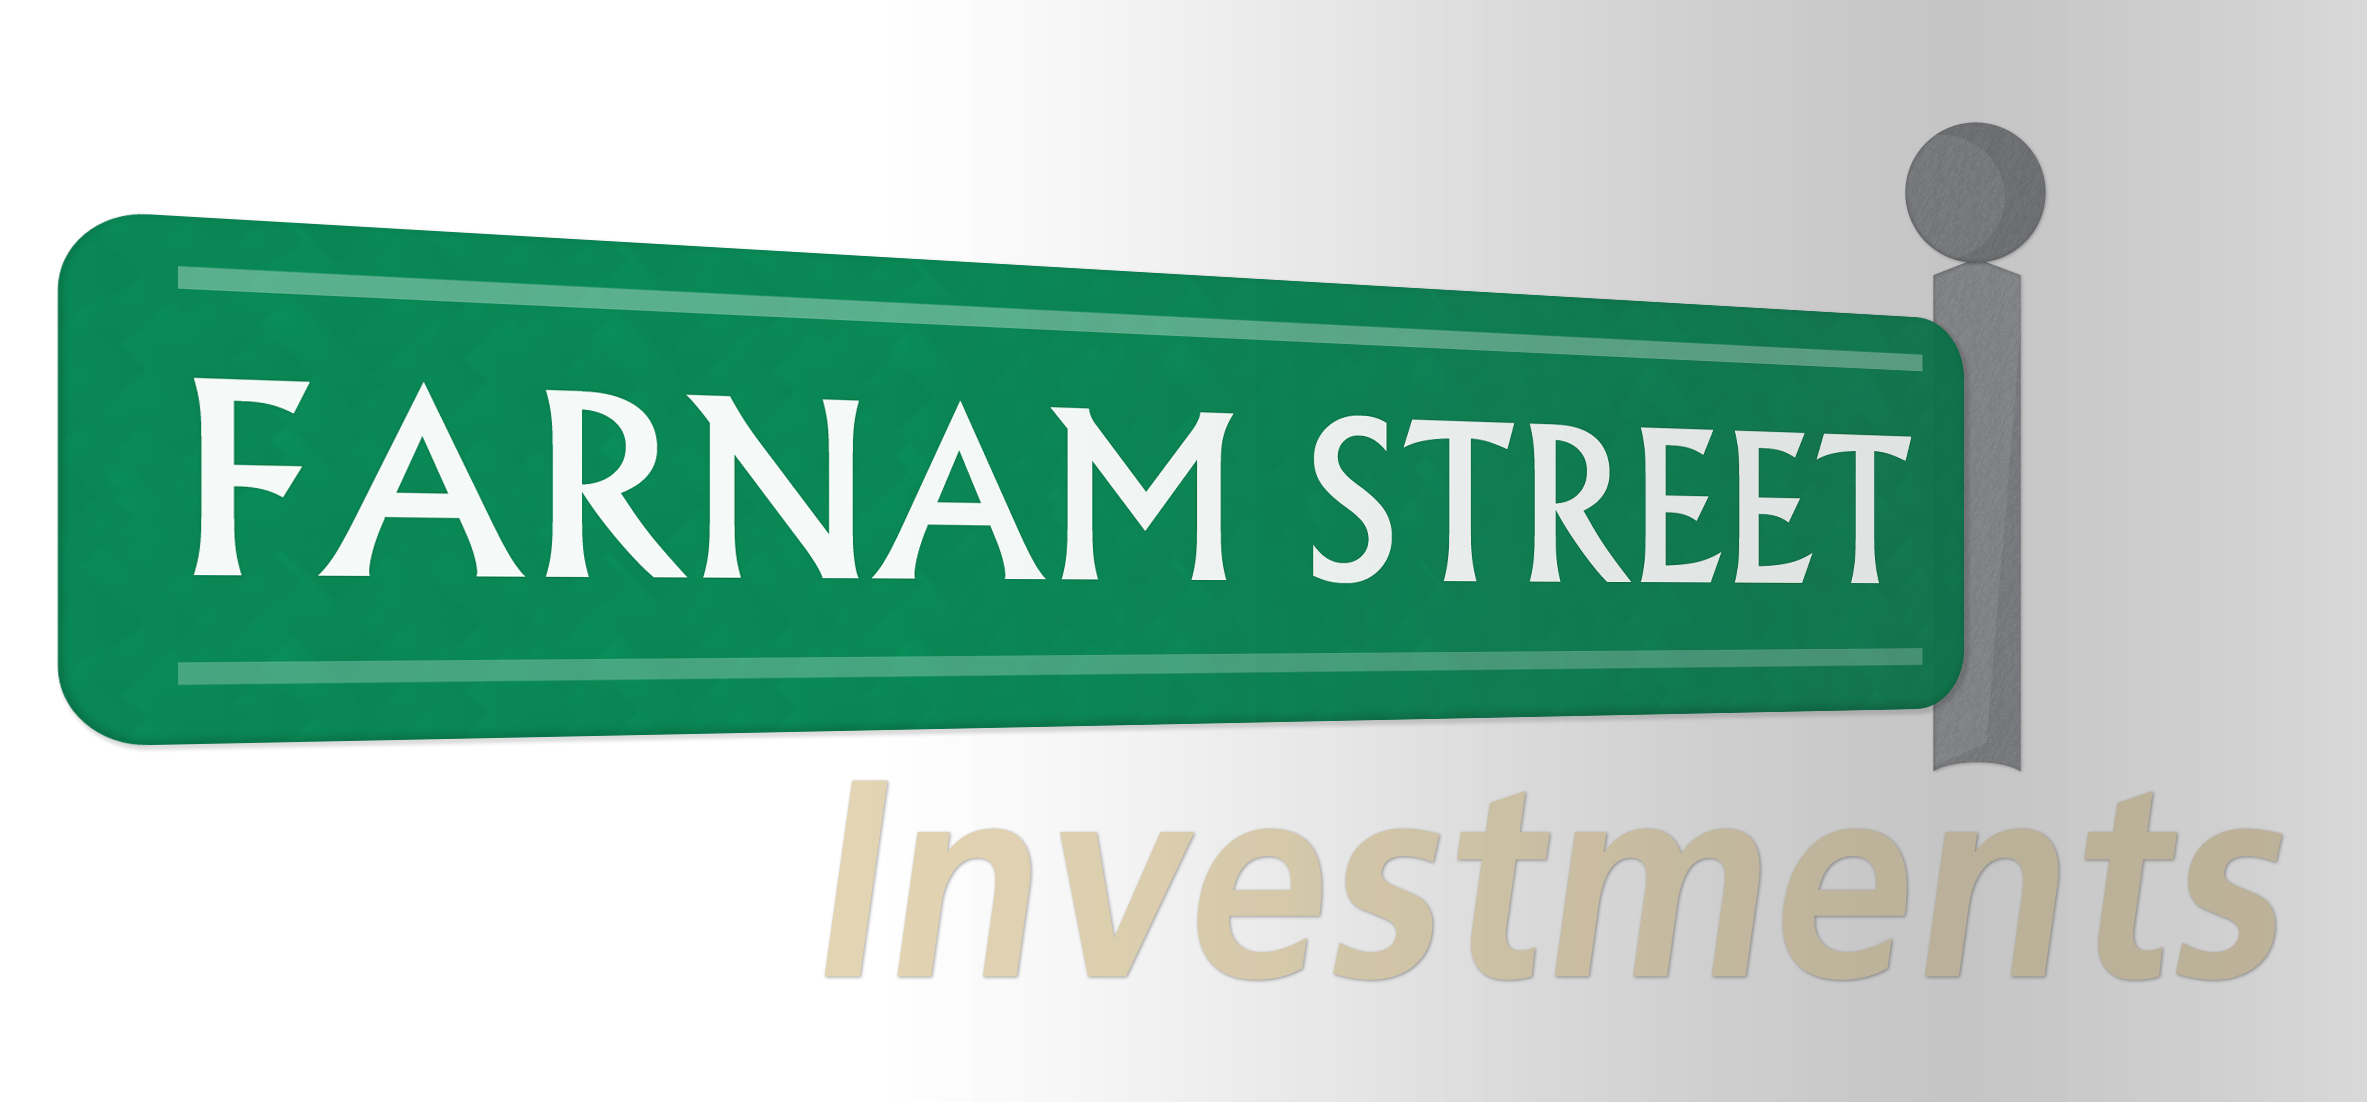 Farnam Street Investments